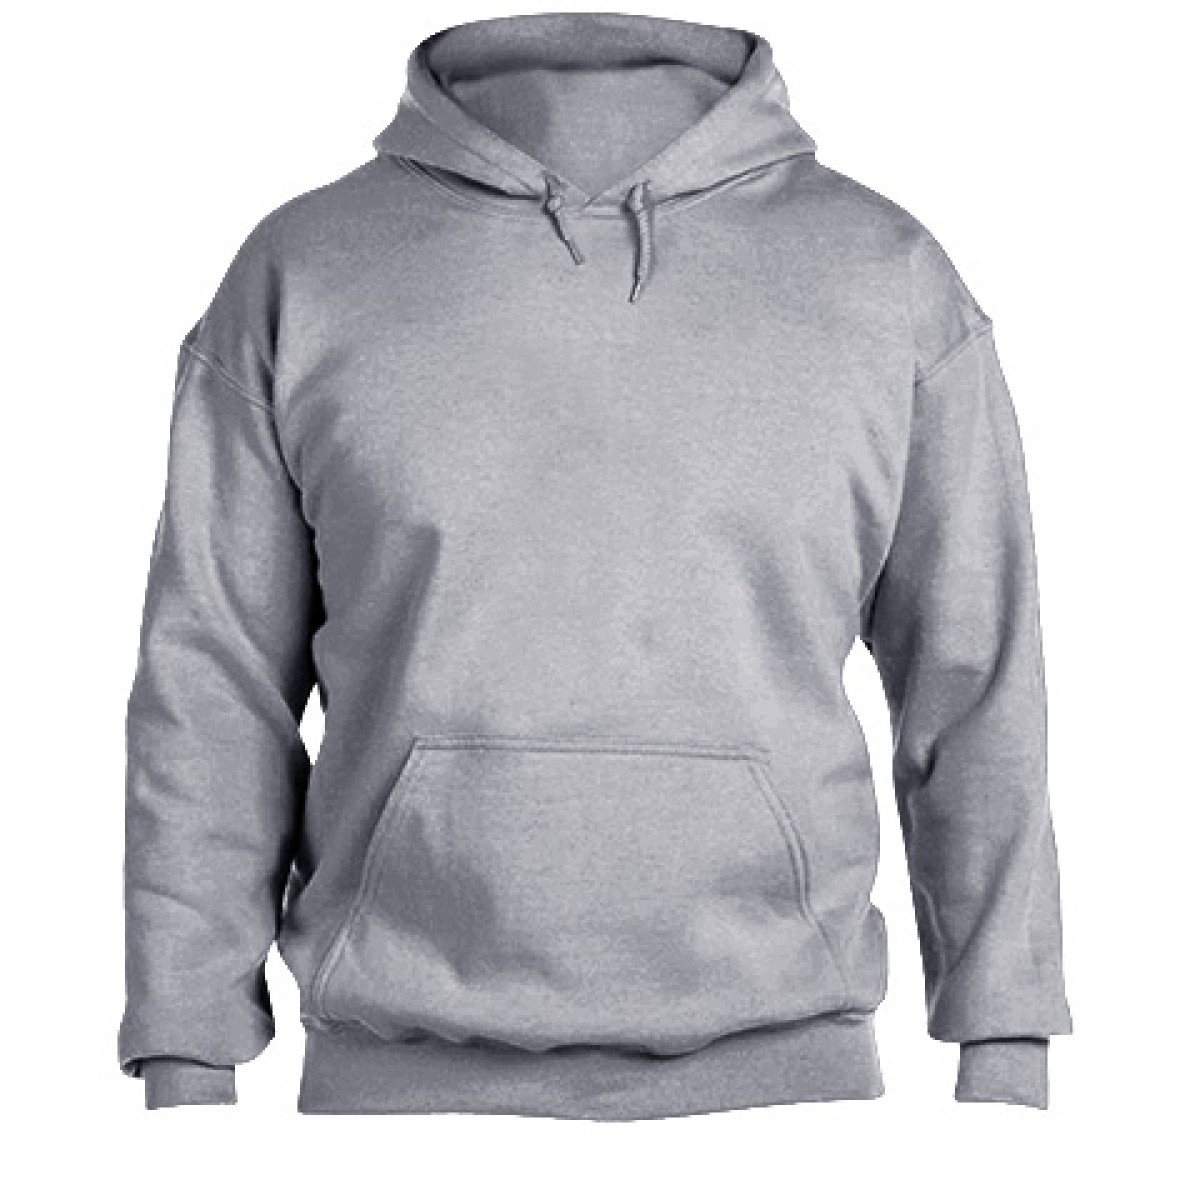 Hooded Sweatshirt 50/50 Heavy Blend -Gray-2XL